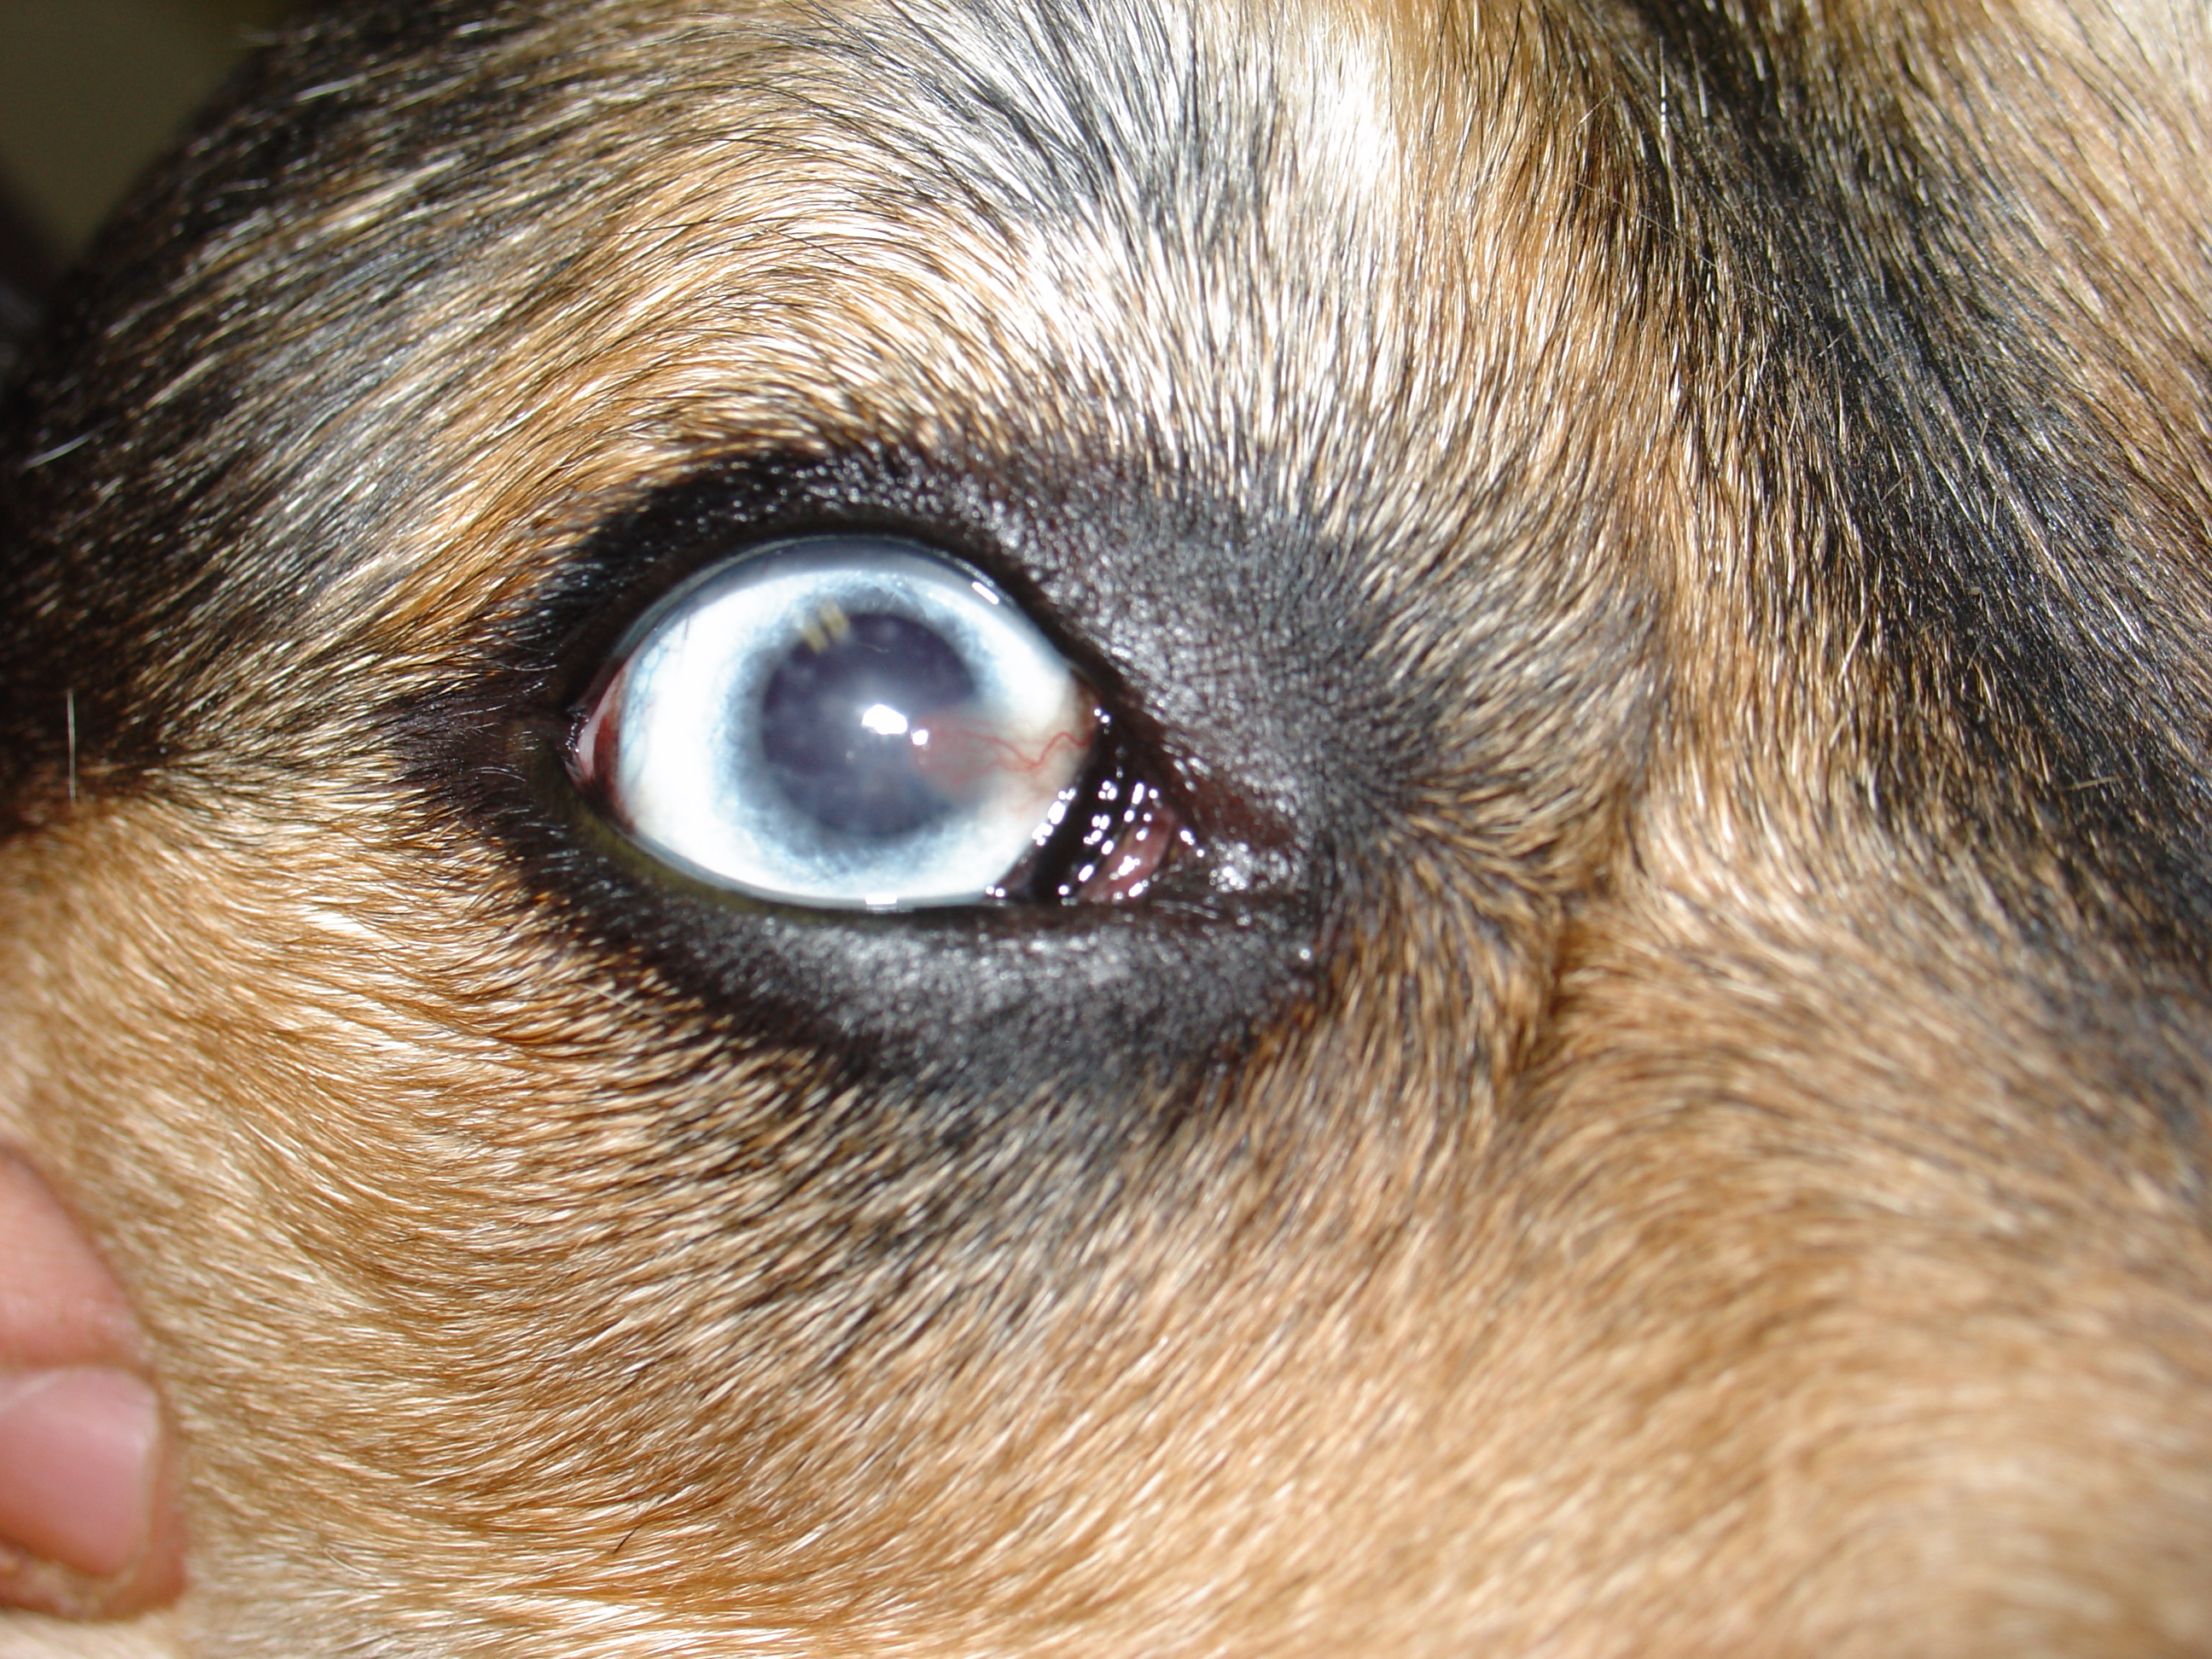 My Dogs Eye Is Bloodshot And Weeping